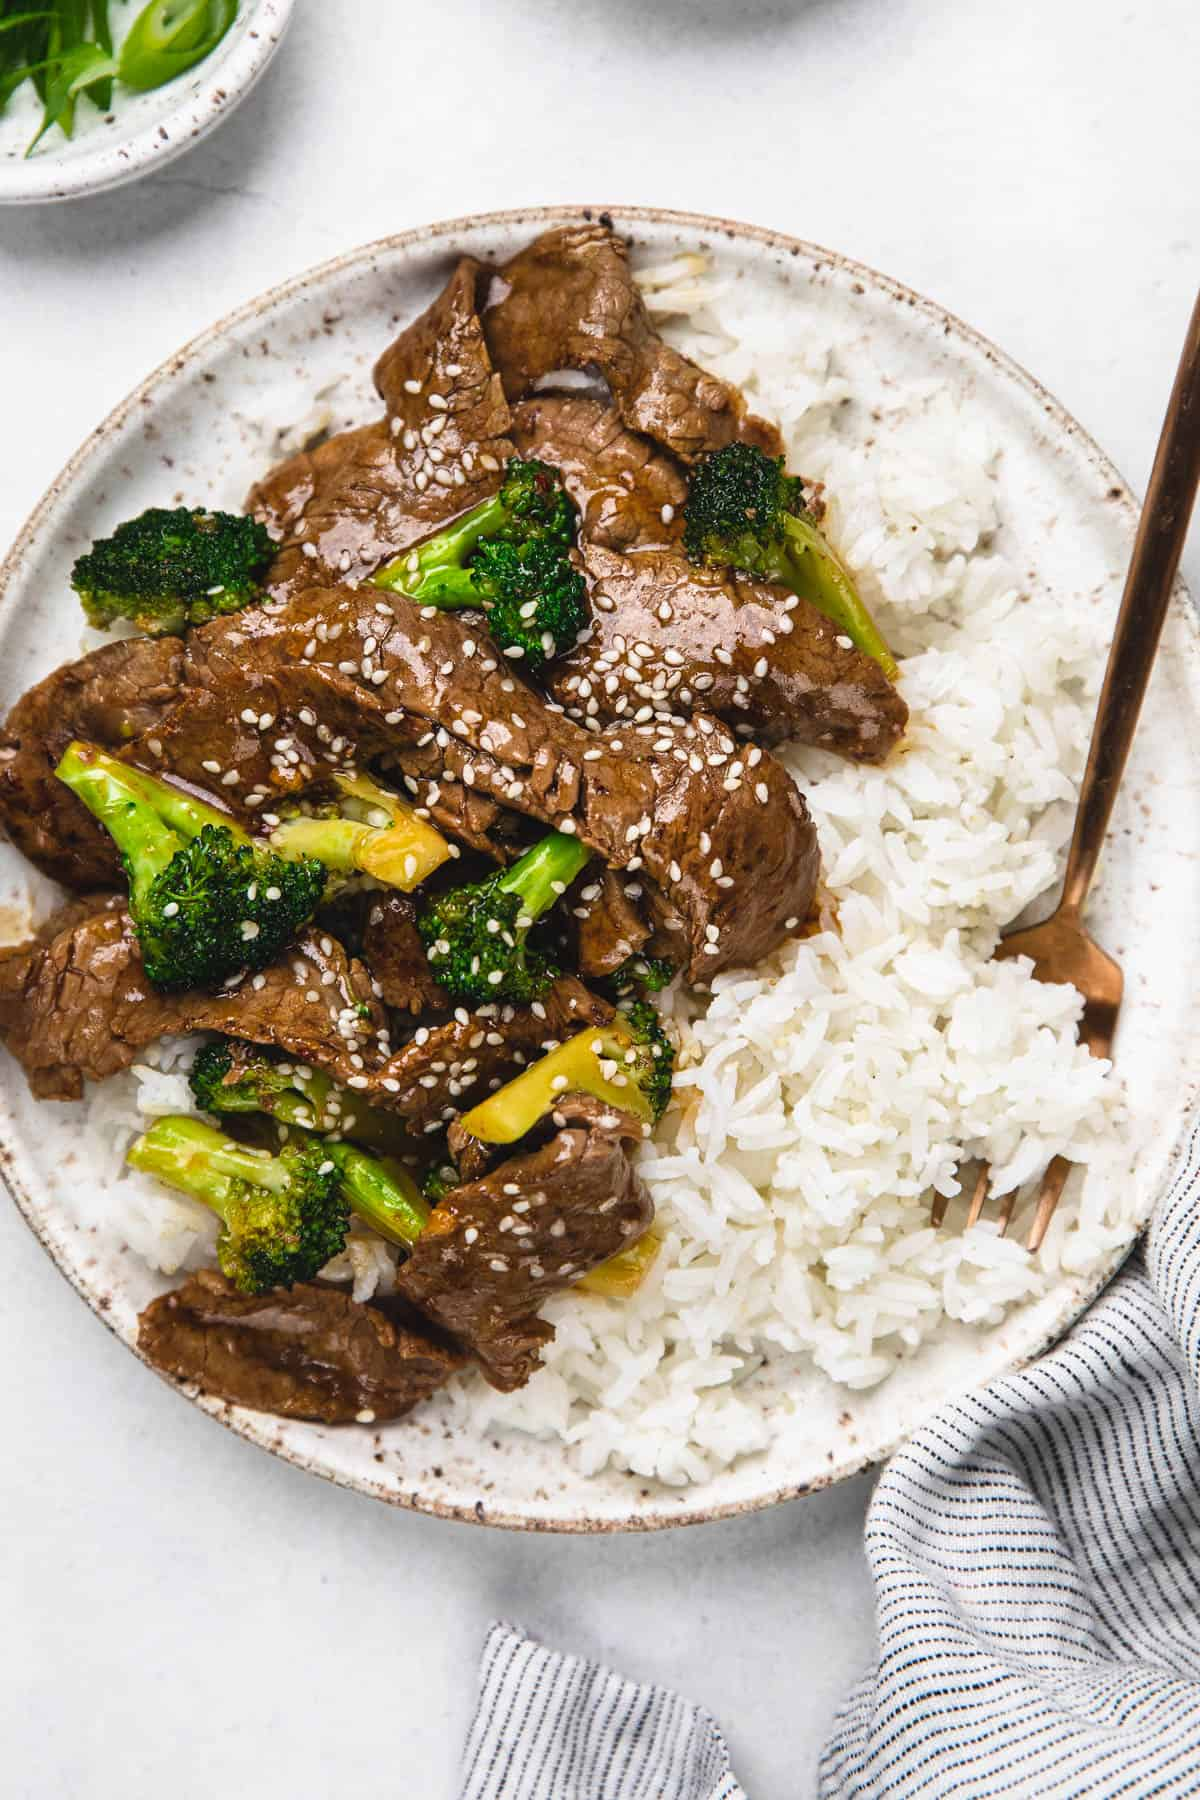 Beef and broccoli with rice on a white plate with golden fork.